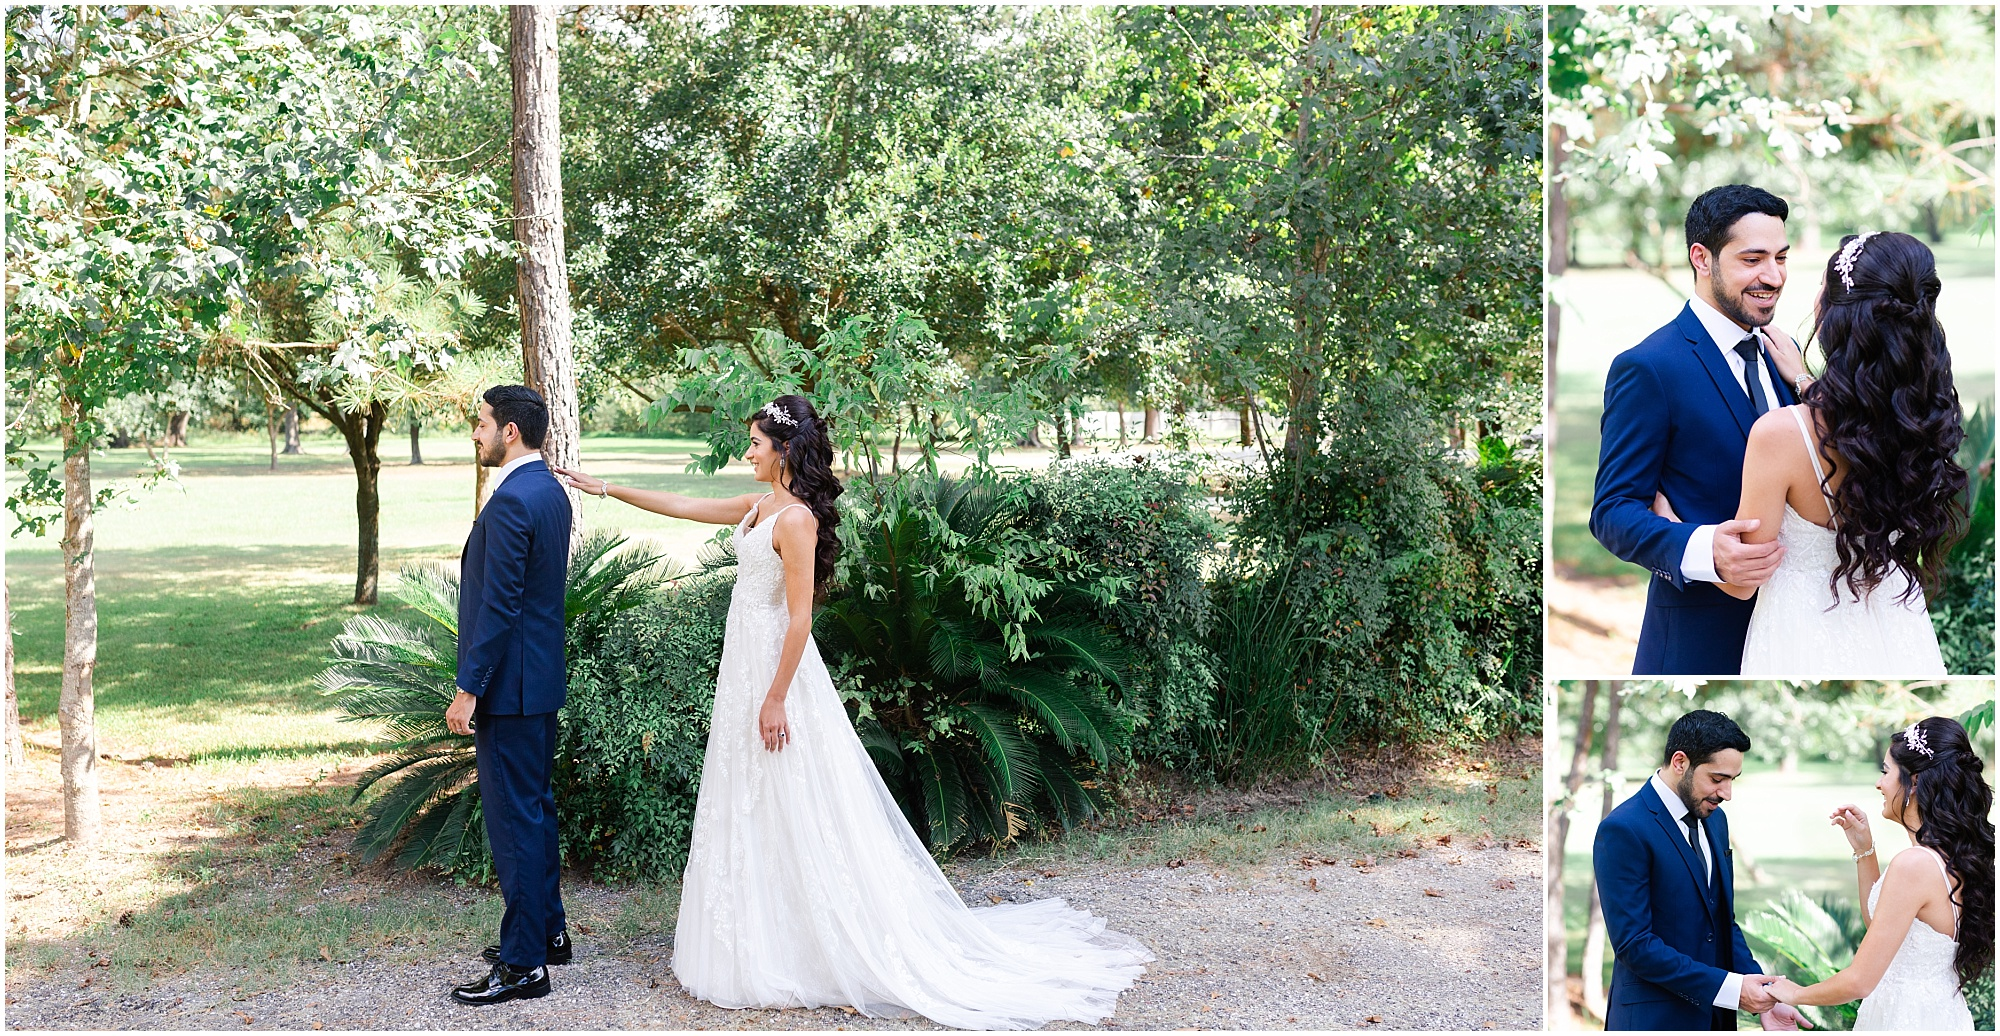 Delightful-Houston-Wedding-Reception-at-La-Tranquila-Ranch